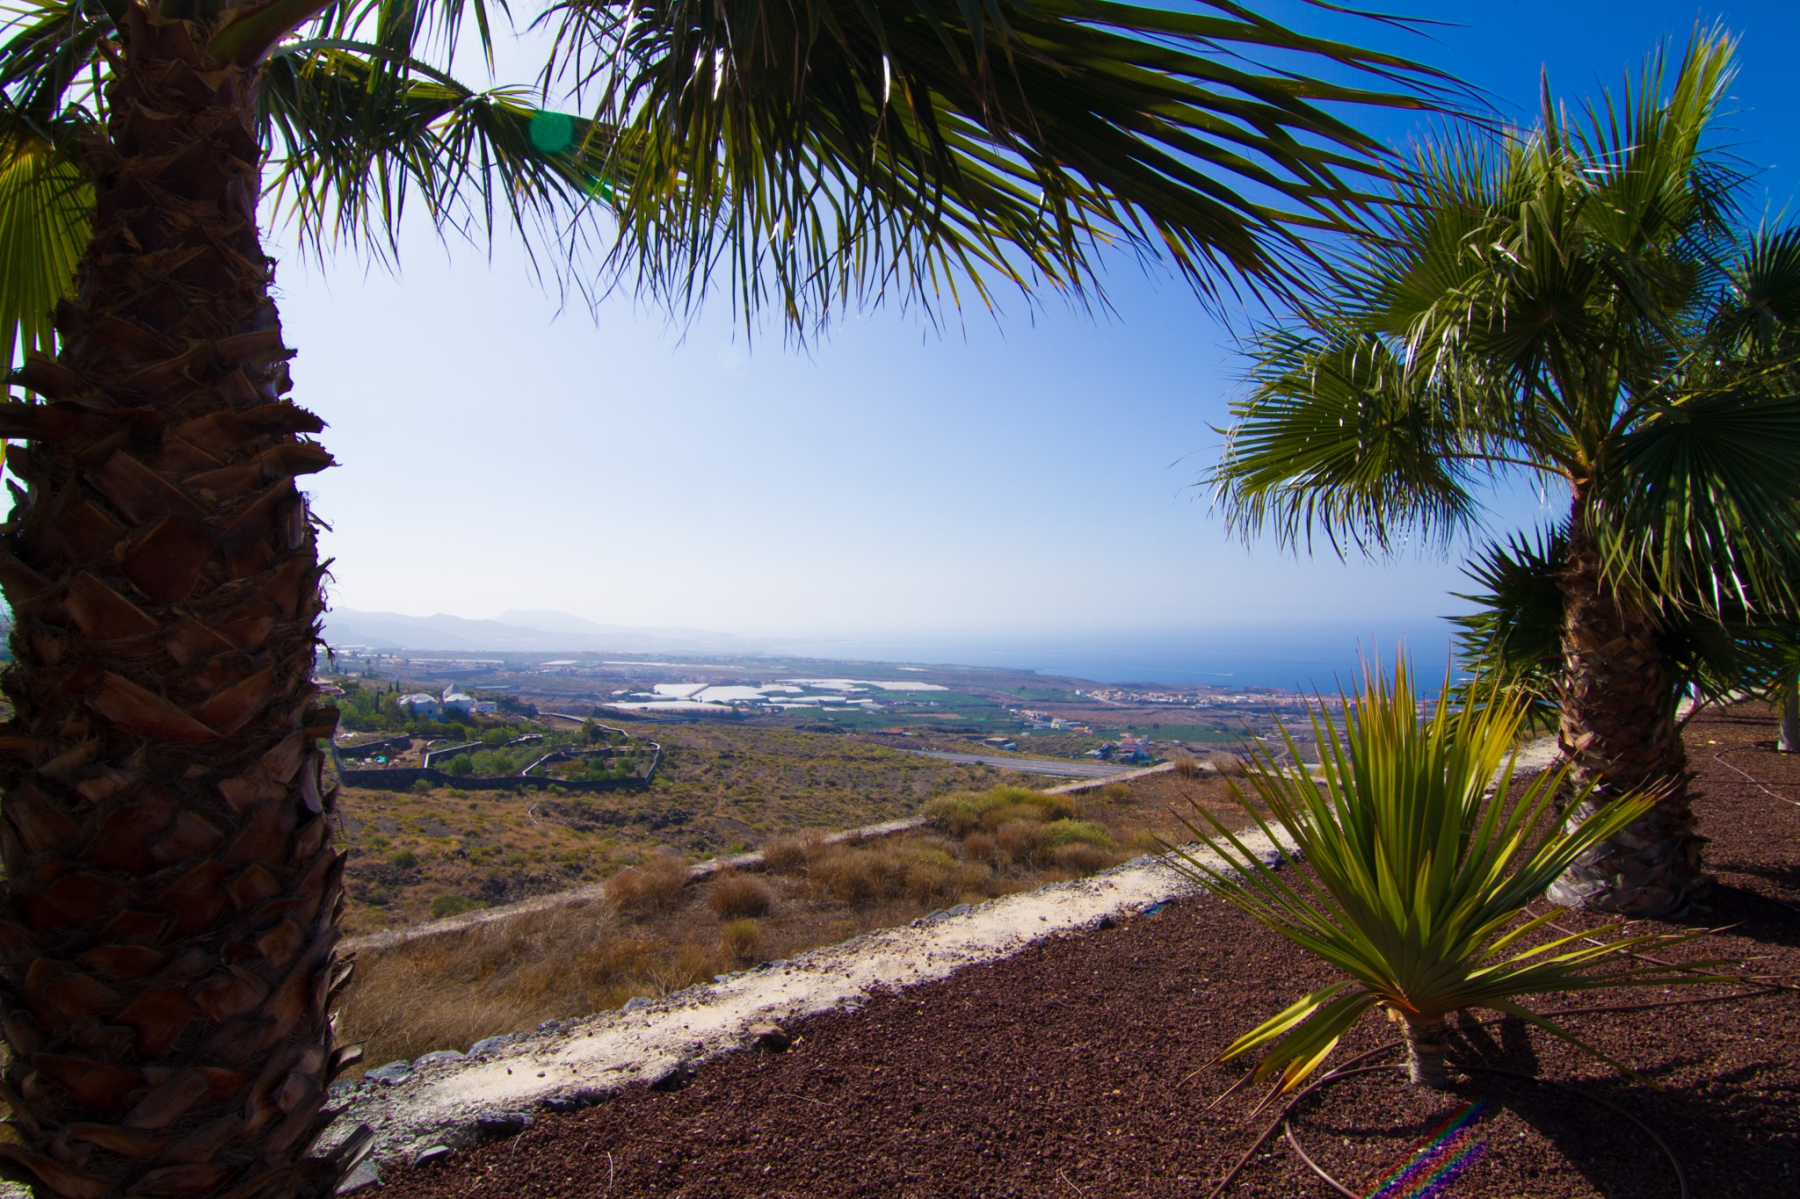 Properties for Sale in Tenerife, Canary Islands, Spain | SylkWayStar Real Estate. 7 Bed Villa + 7000 m<sup>2</sup> - Iboybo - Adeje. Image-364